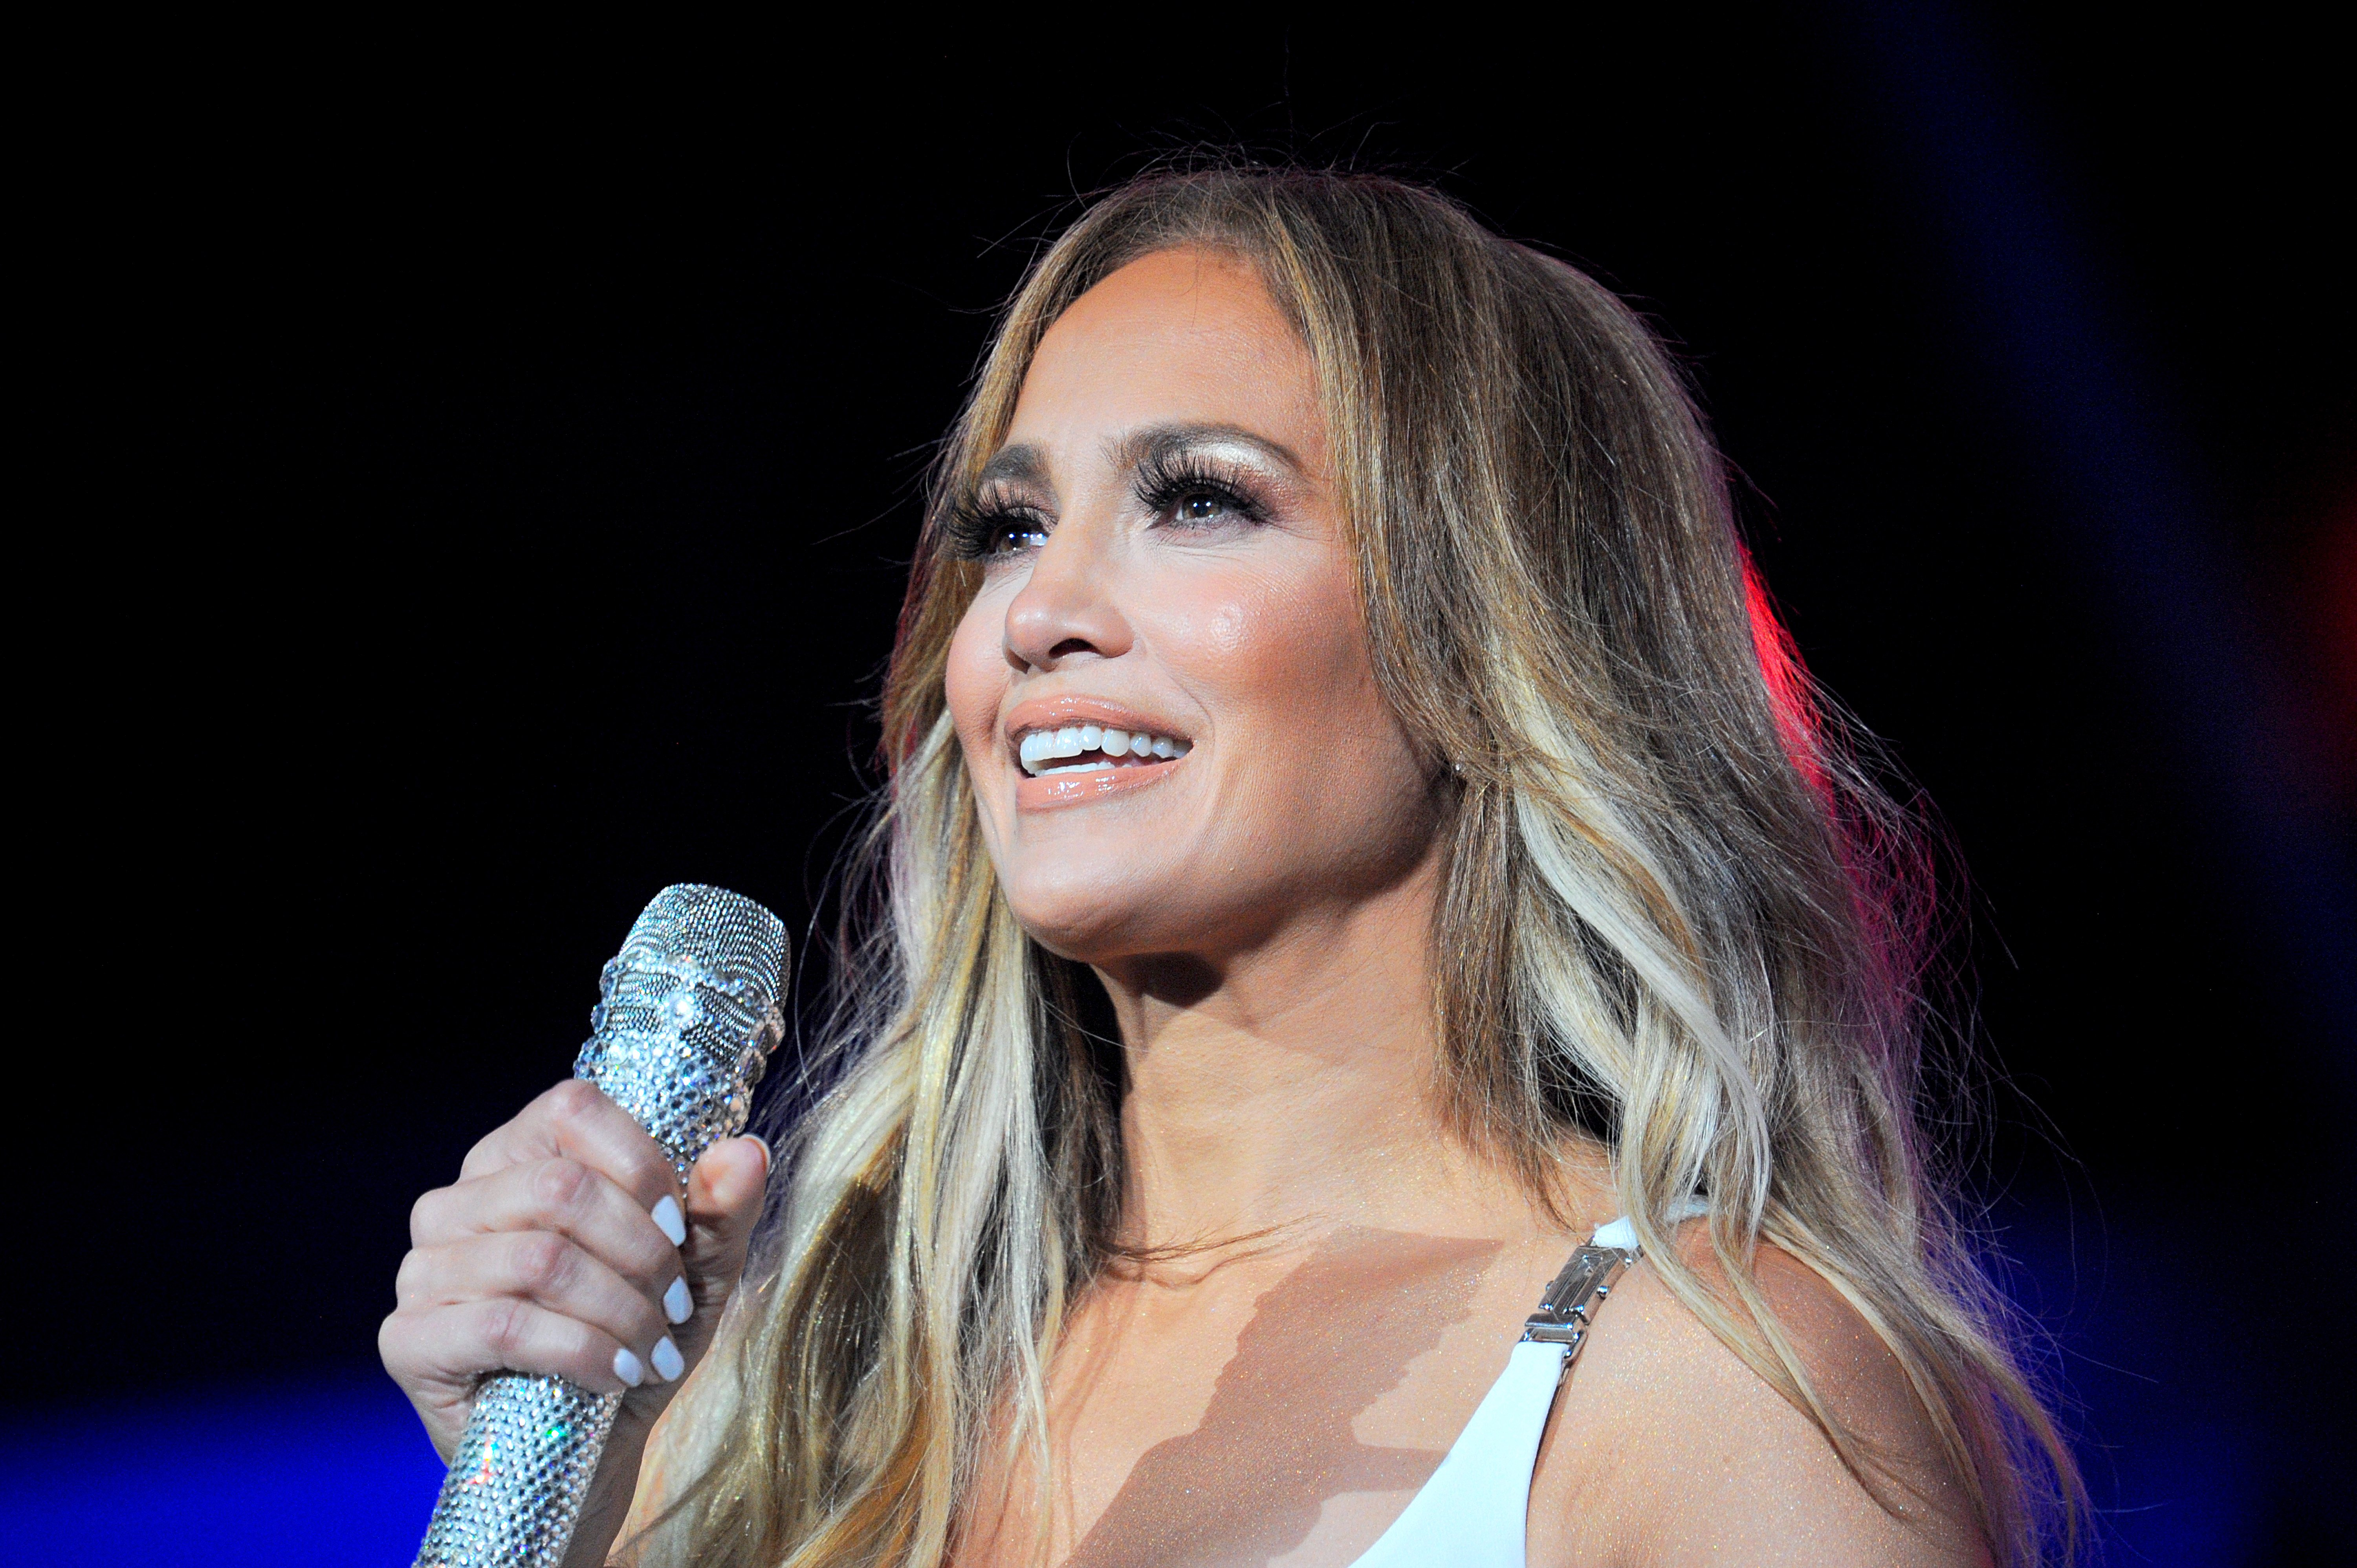 """Jennifer Lopez on stage at """"iHeartRadio Fiesta Latina"""" in Miami on 2 November, 2019. 